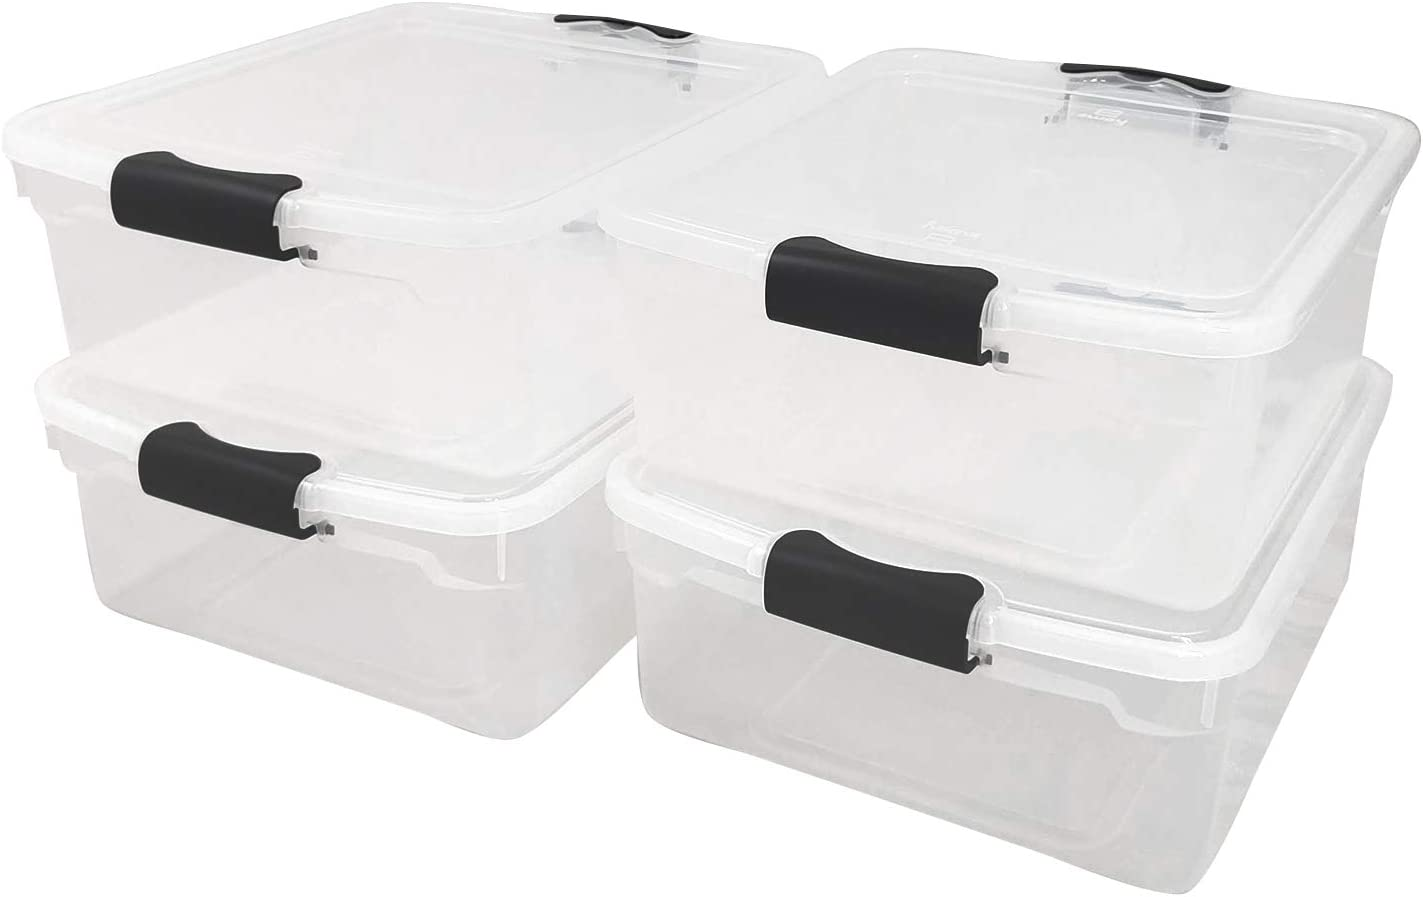 Homz 3420CLGRDC.04 メーカー再生品 Clear ◆セール特価品◆ storage container 15.5 with lid Quart